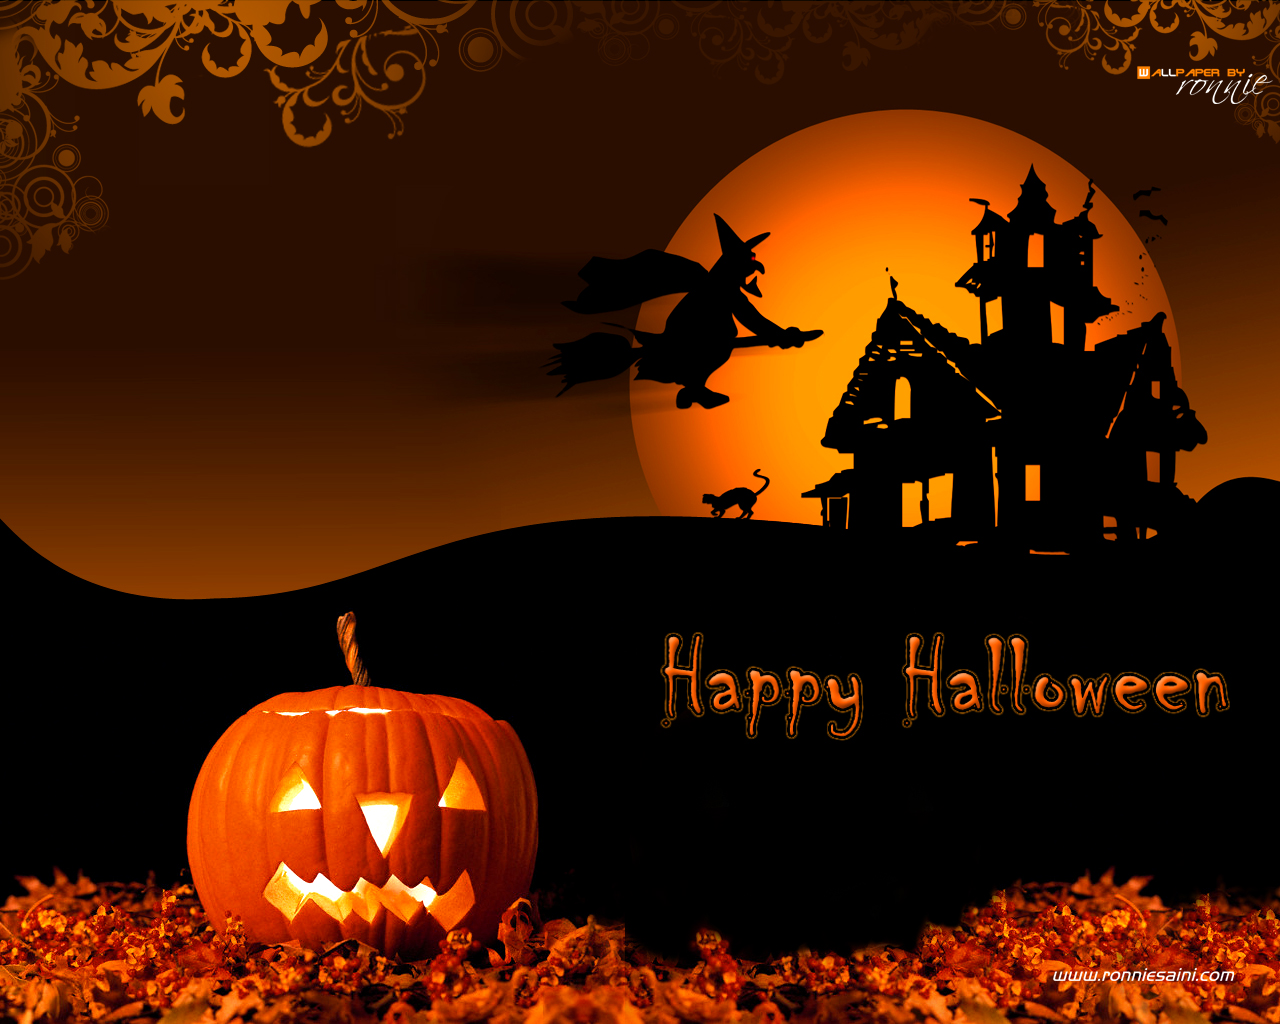 httpmi9comhalloween wallpaper free halloween wallpaper halloween 1280x1024